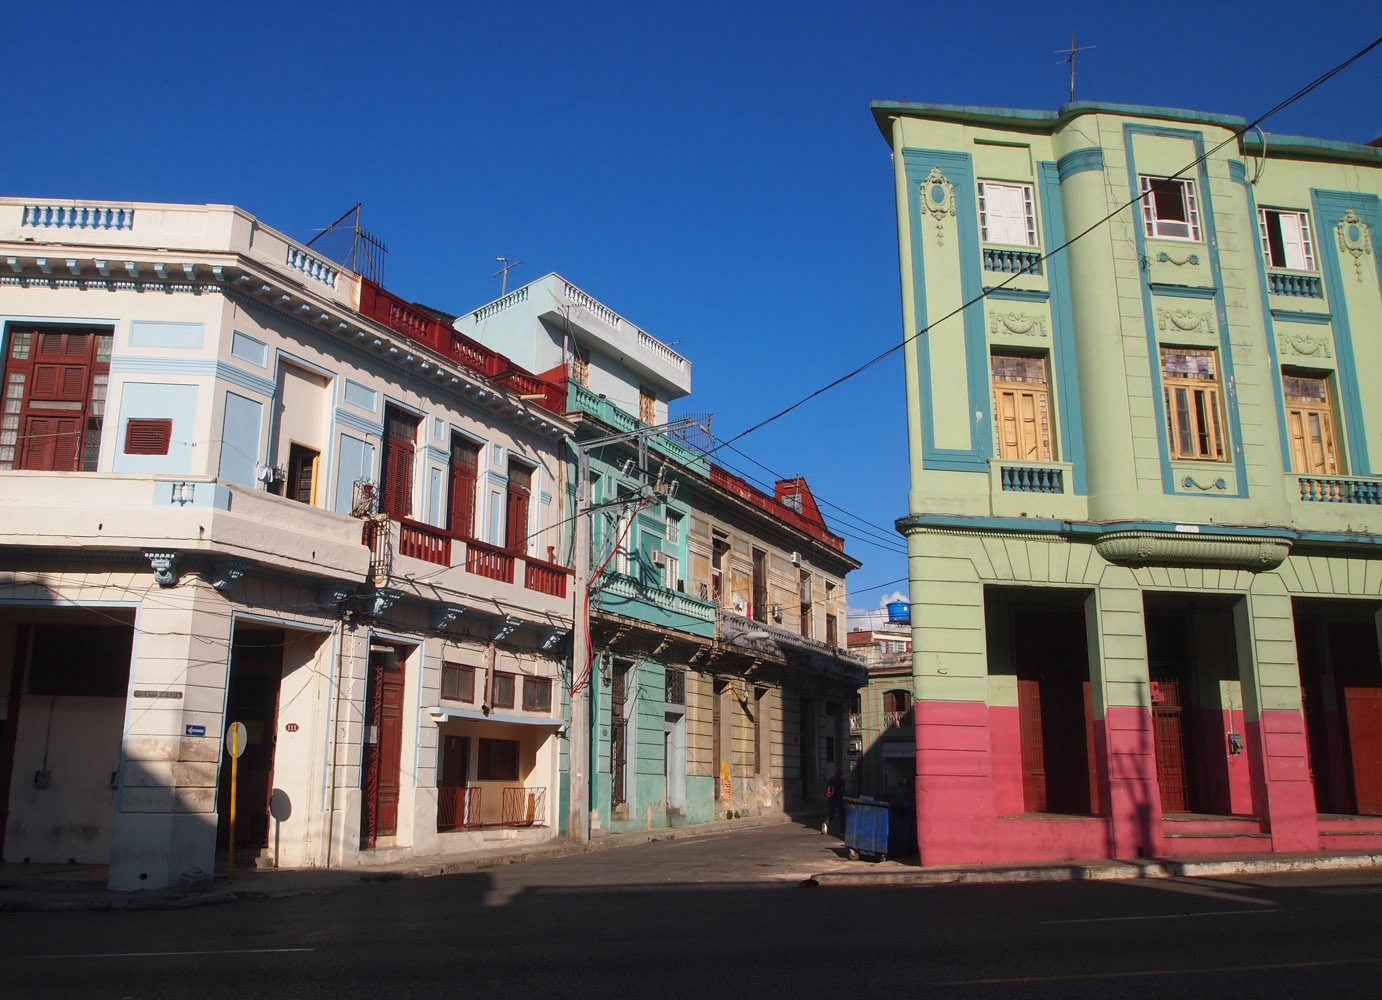 Cuba-Havana-Colorful-Buildings.jpg